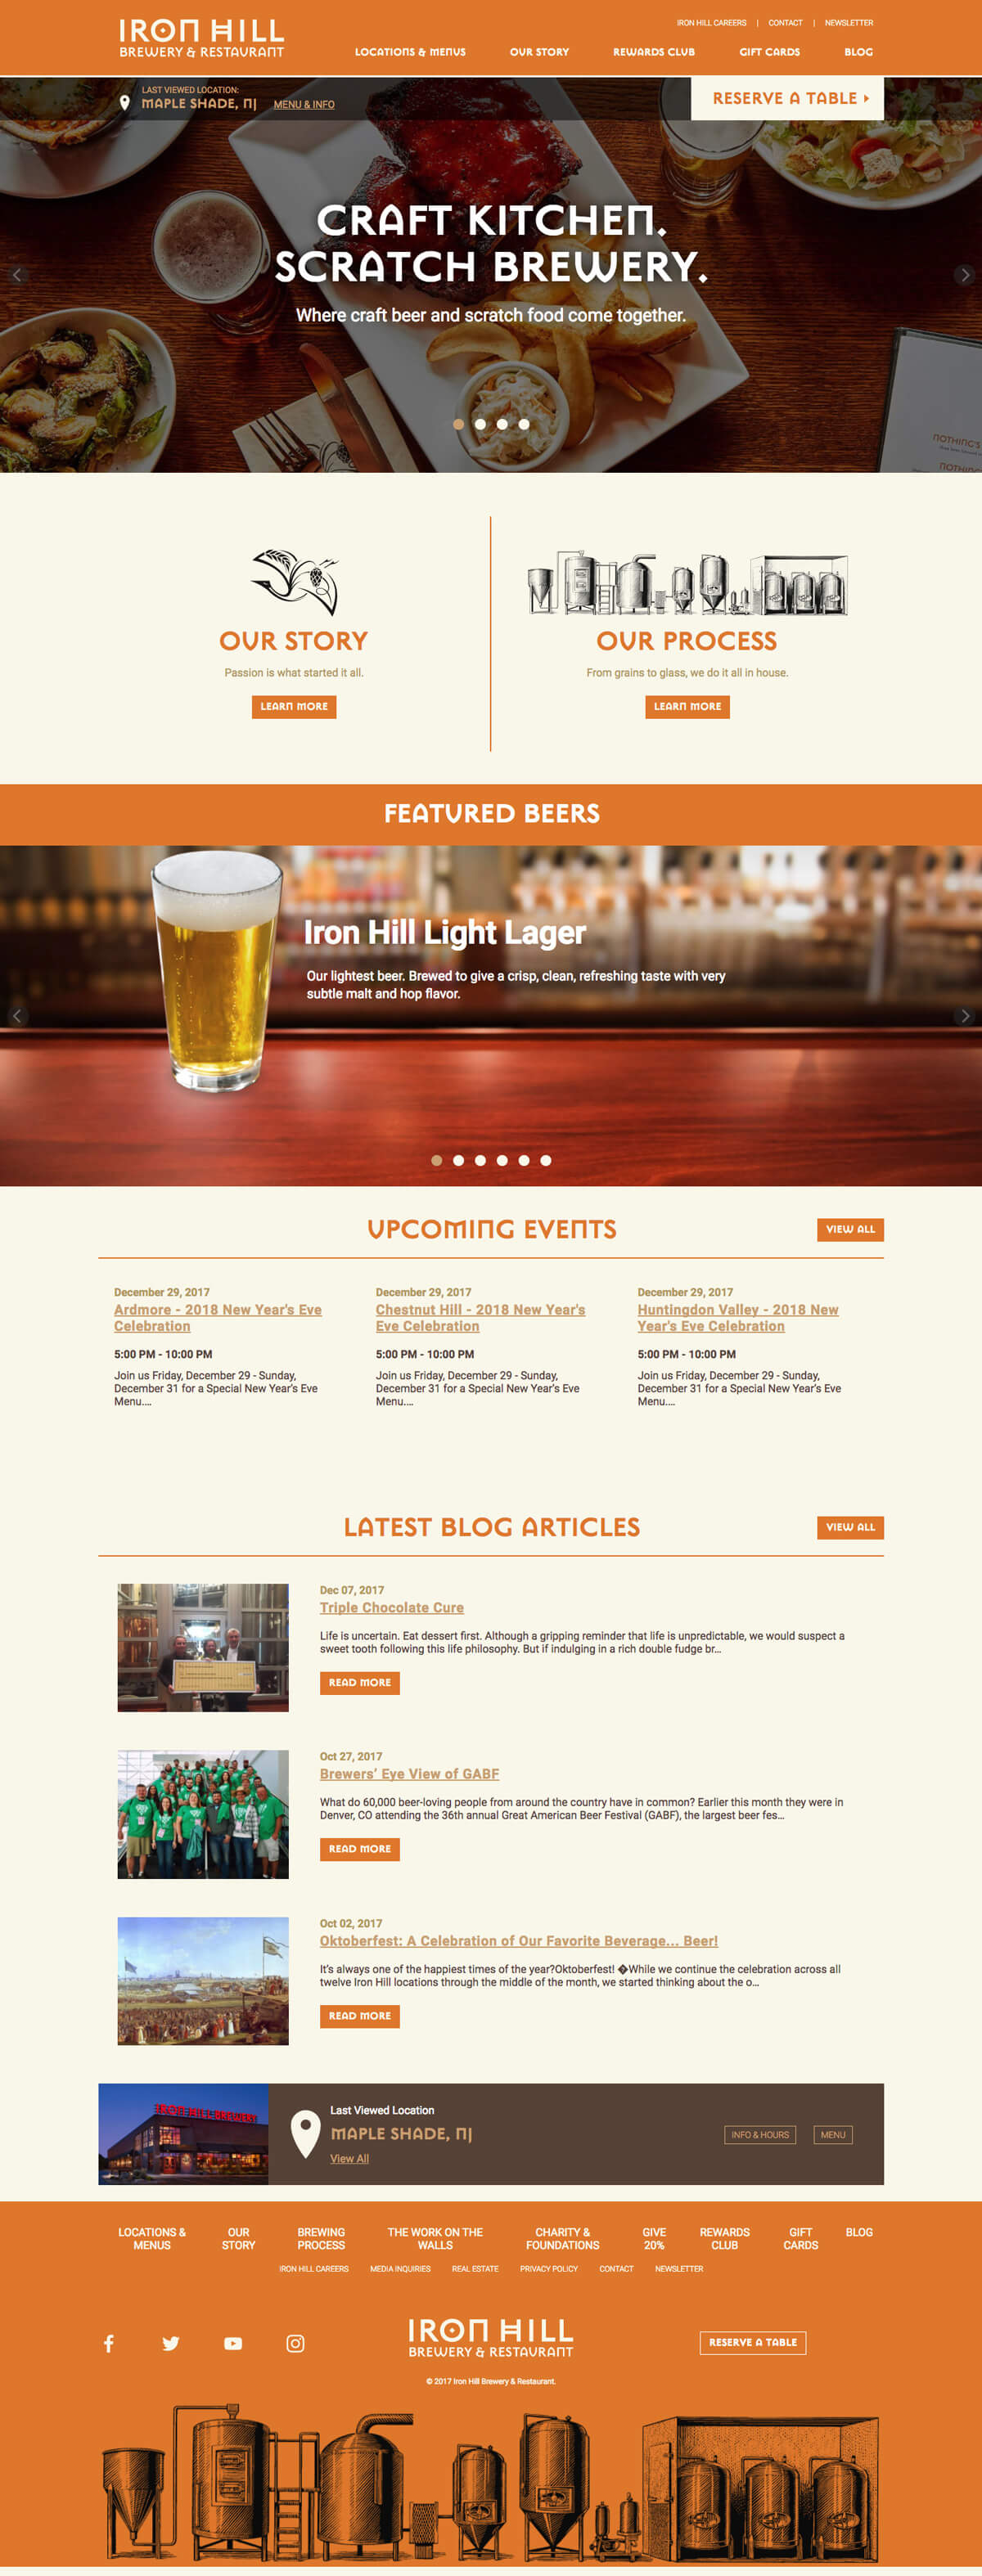 A screen capture of the Iron Hill Brewery website home page.